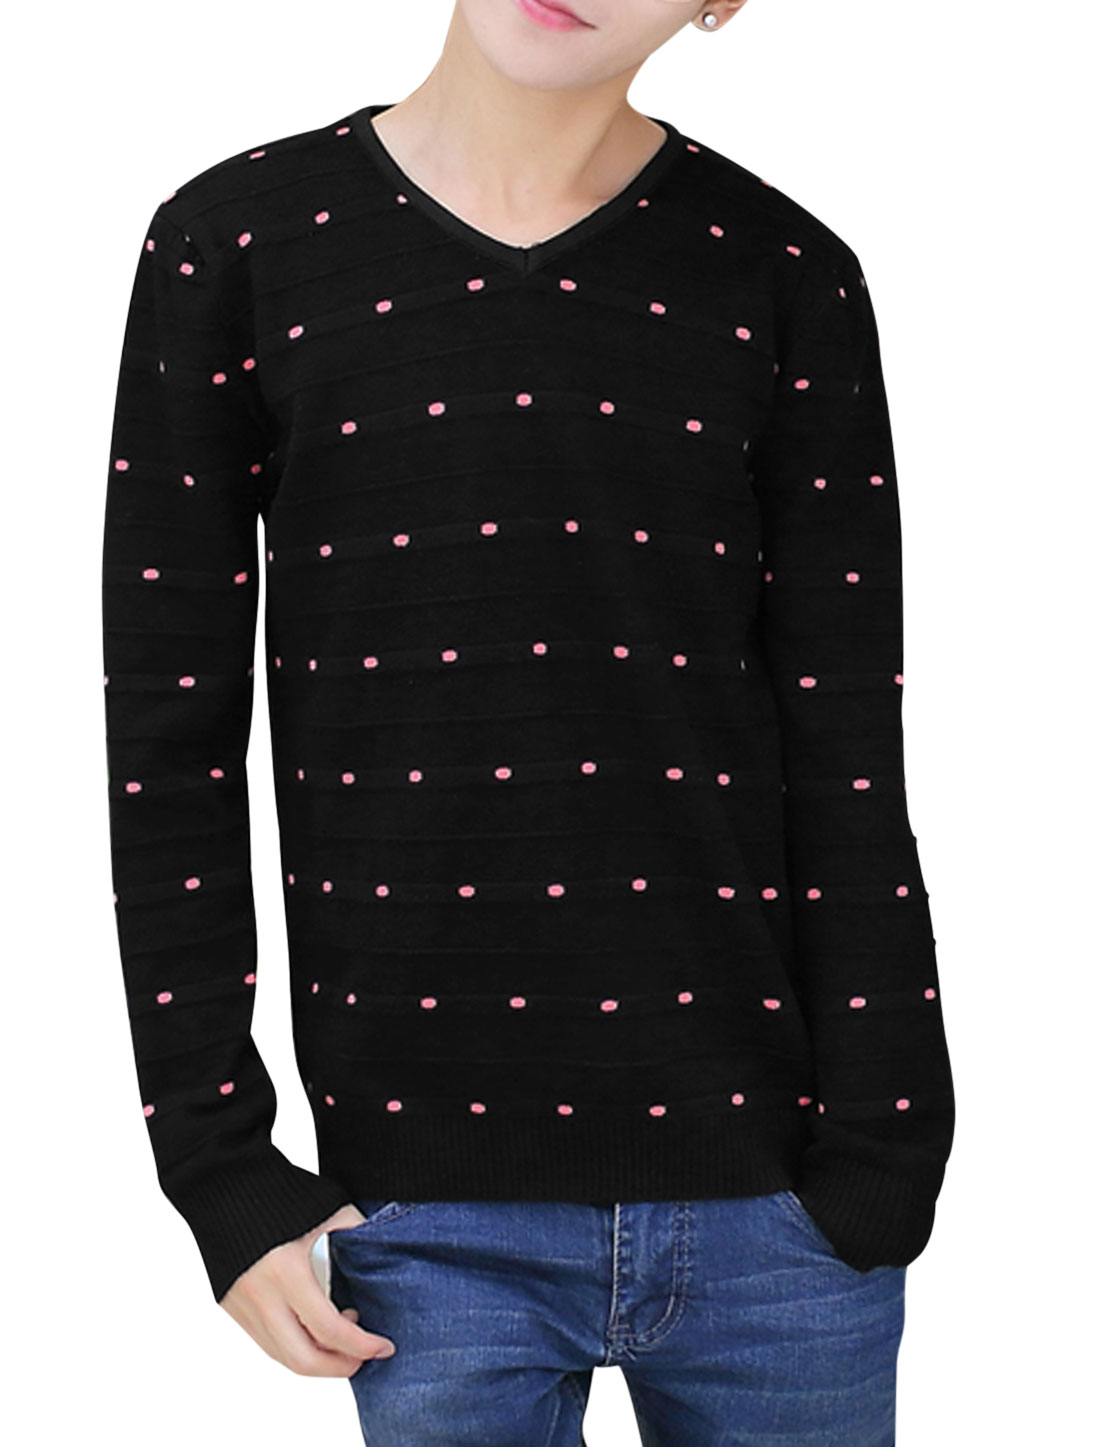 V Neck Long Sleeves Casual Knit Shirt for Men Black S